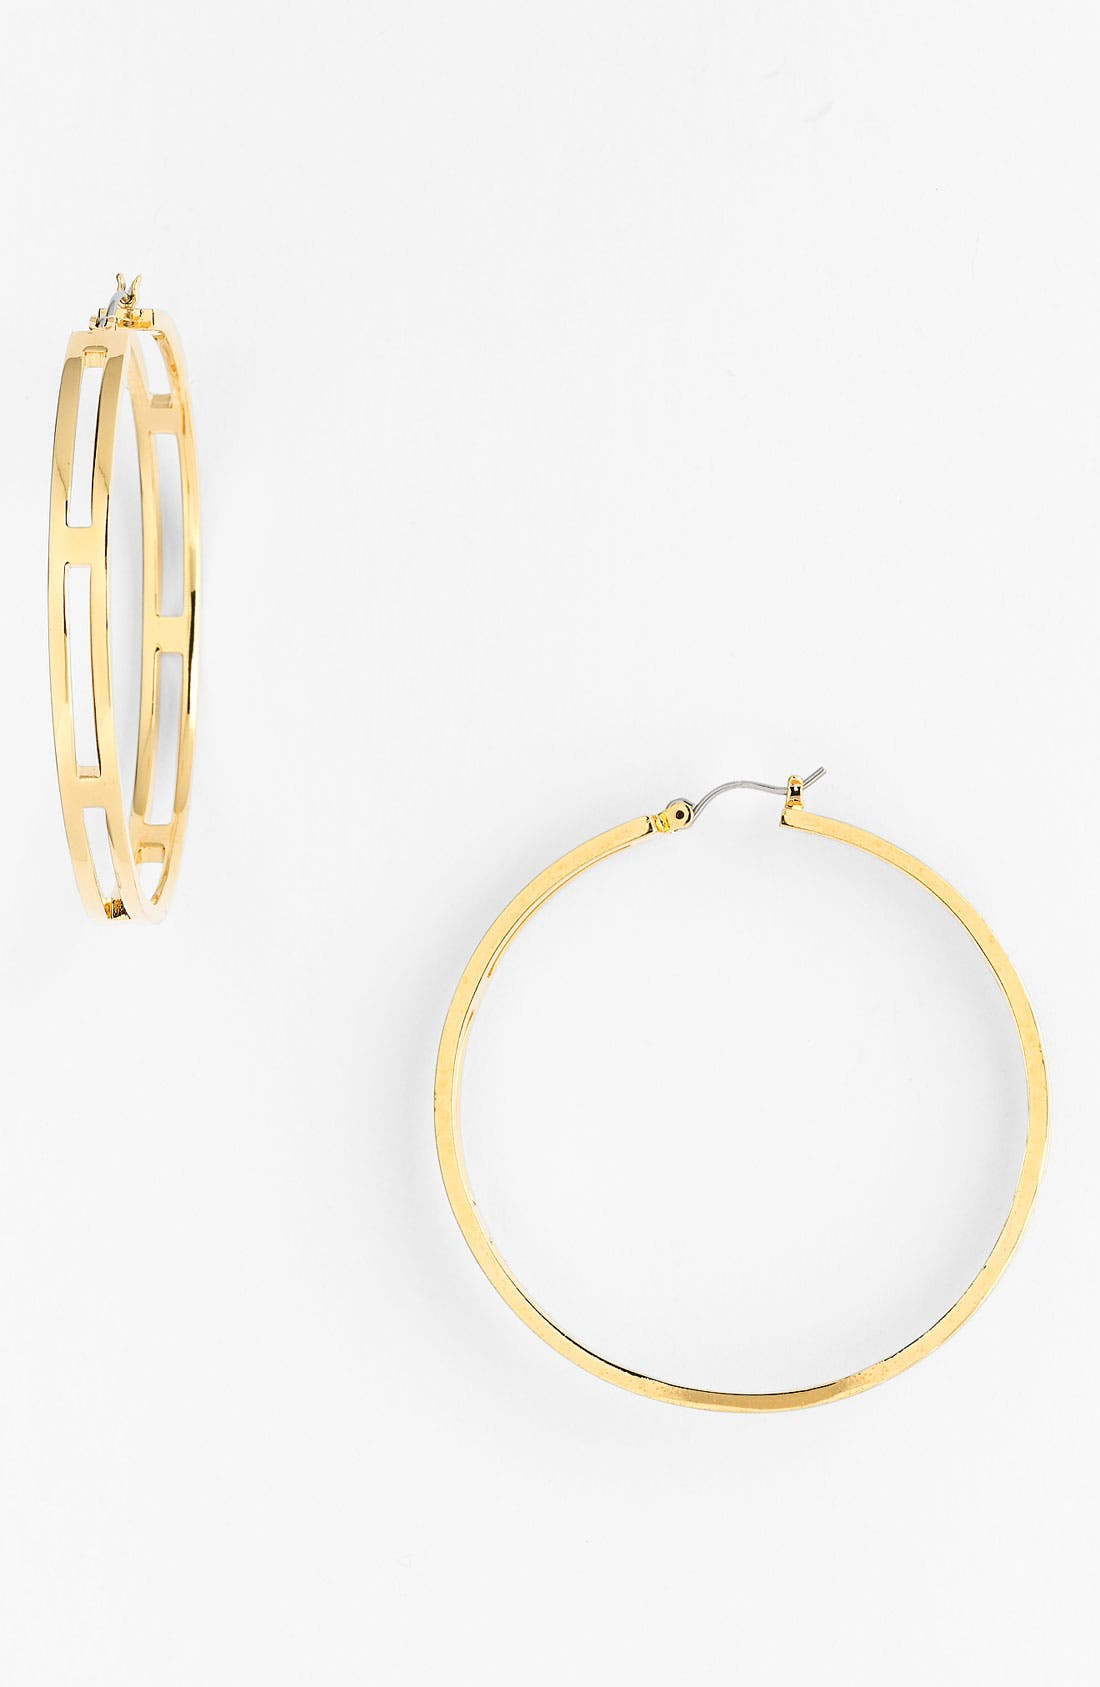 Alternate Image 1 Selected - Vince Camuto 'Basics' Cutout Hoop Earrings